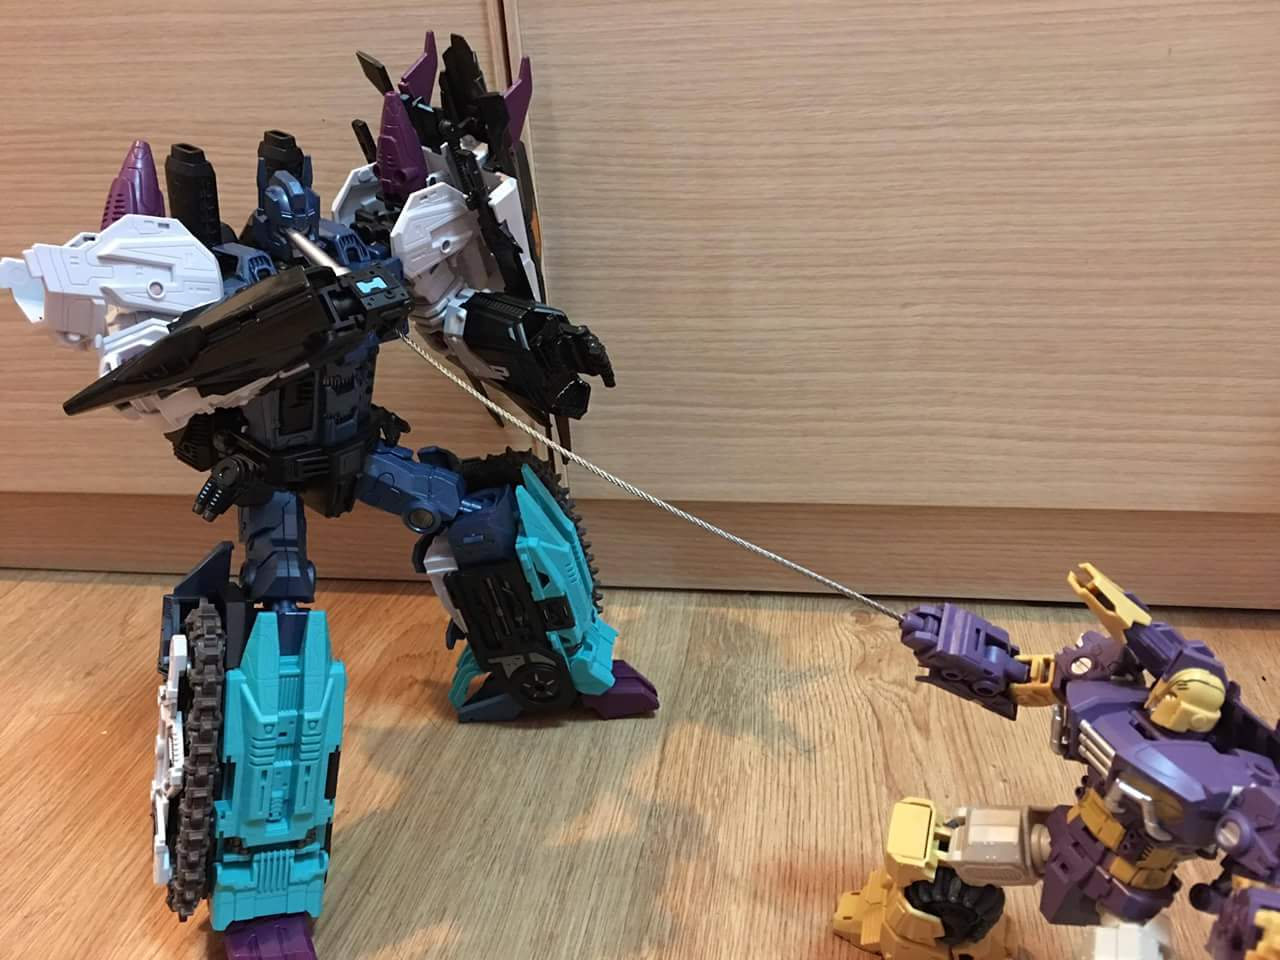 [Mastermind Creations] Produit Tiers - R-17 Carnifex - aka Overlord (TF Masterforce) - Page 3 0jVuAA8x